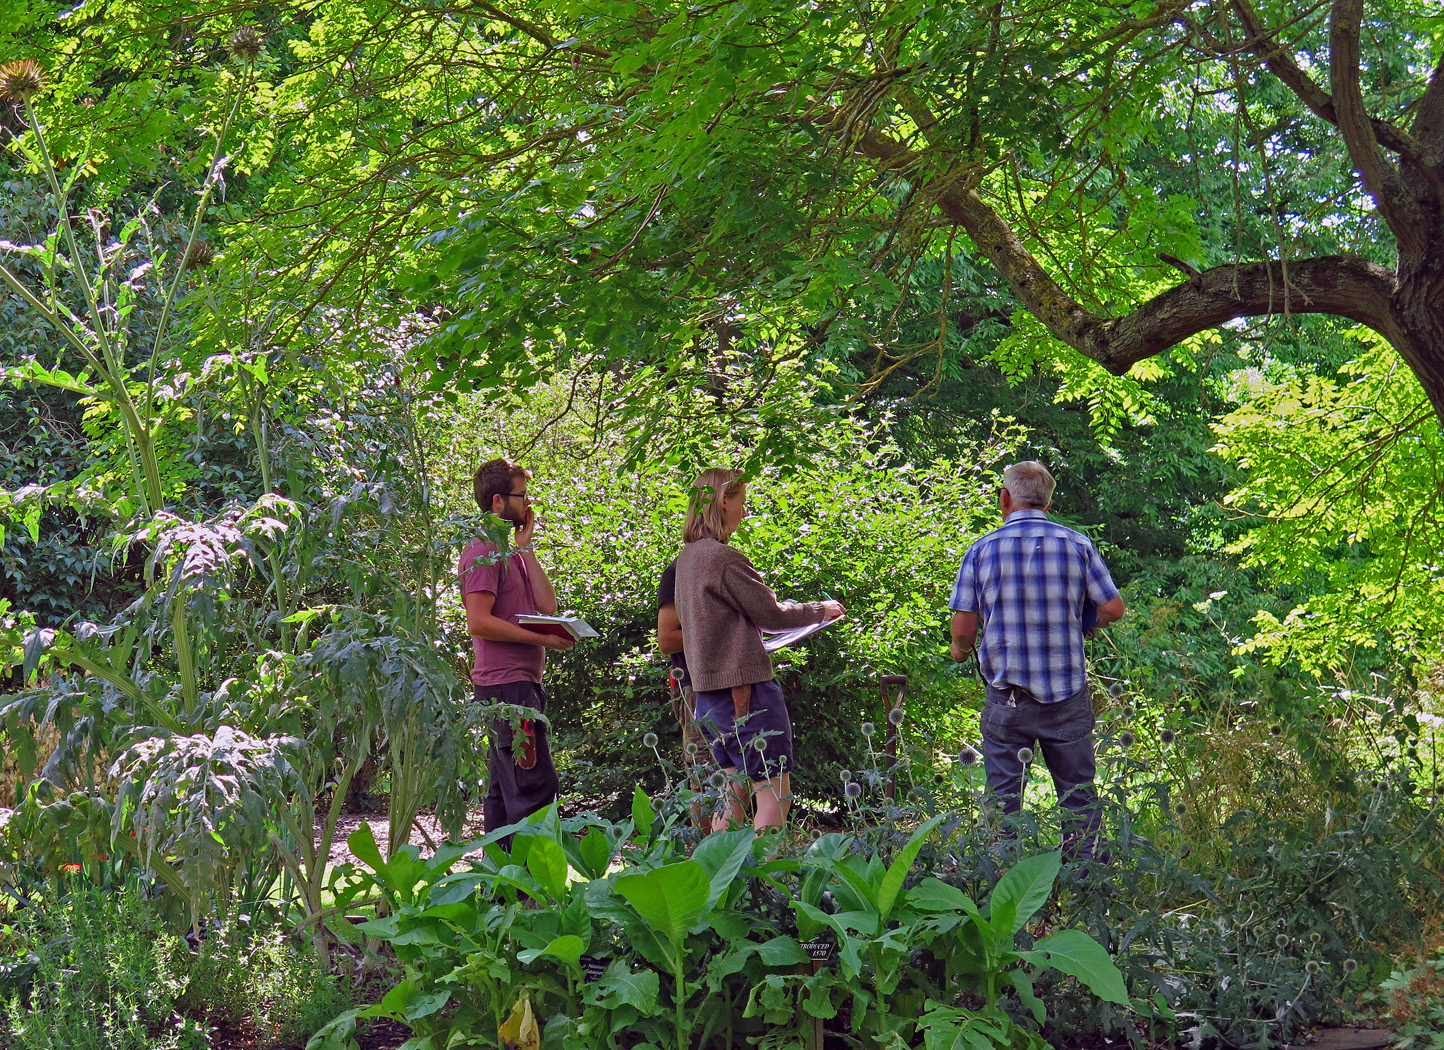 A tour of the Woodland garden in the summer.